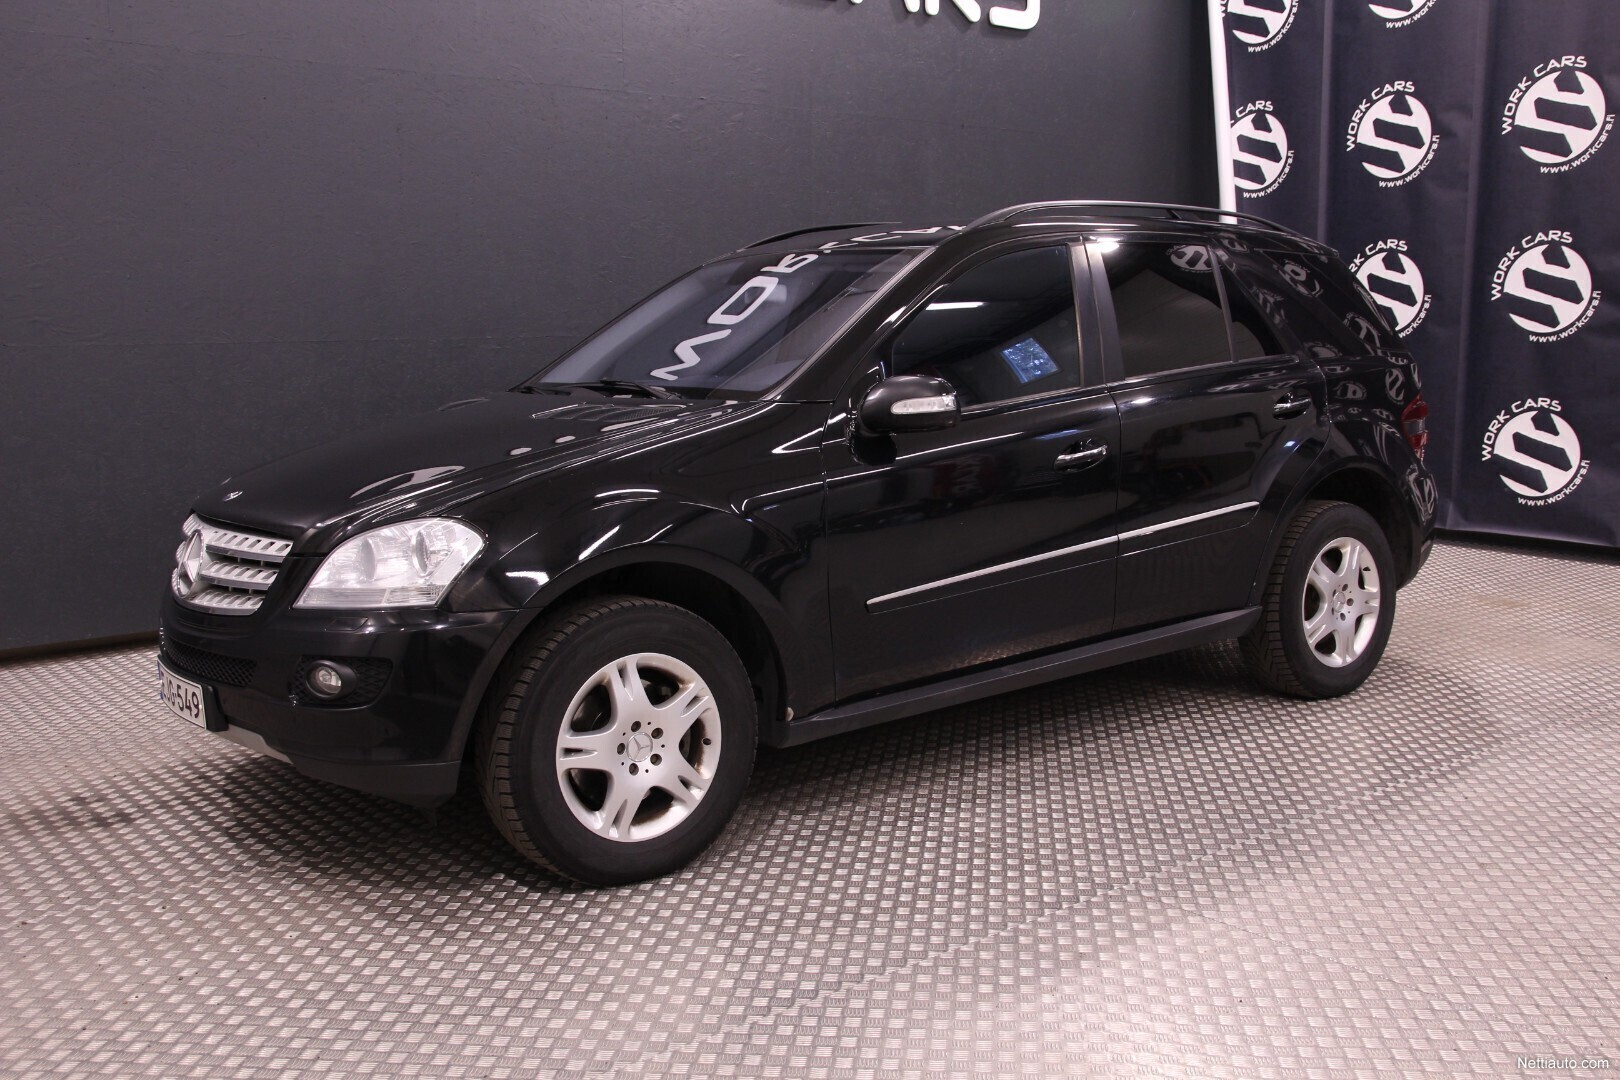 Mercedes-Benz ML 320 CDI 4matic 5d A vm. 2007